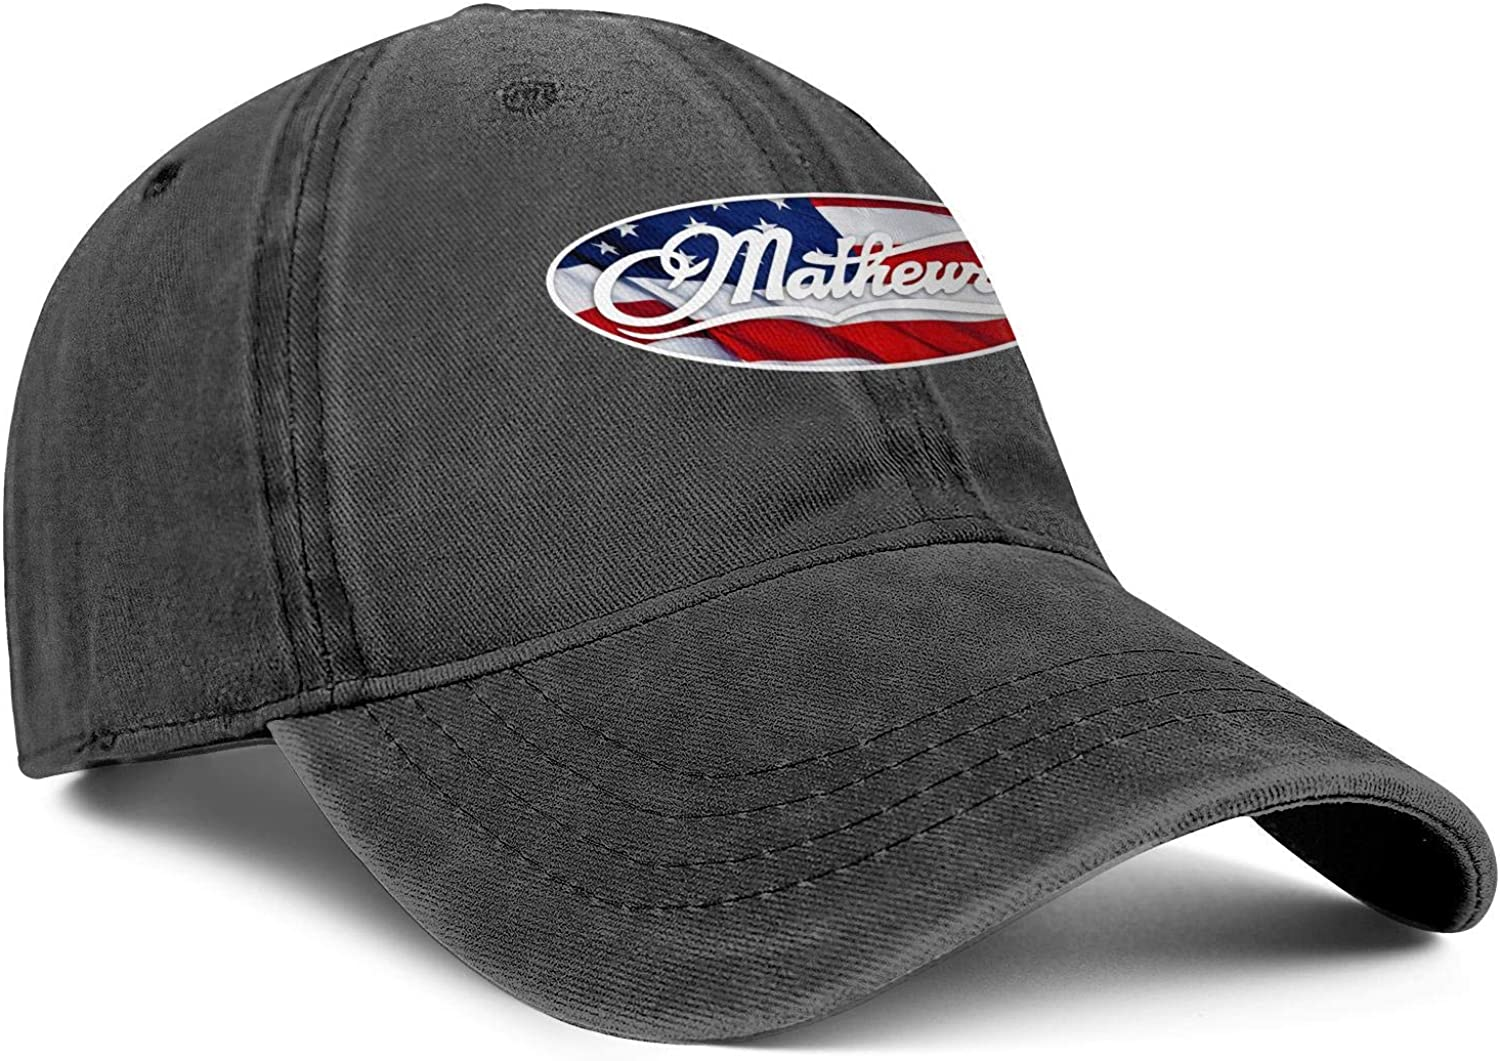 BSUTU Mens Womens Cowboy Hat Mathews-Archery-Compound-Bow-American-Flag Washed Cotton Adjusted Sport Baseball Cap